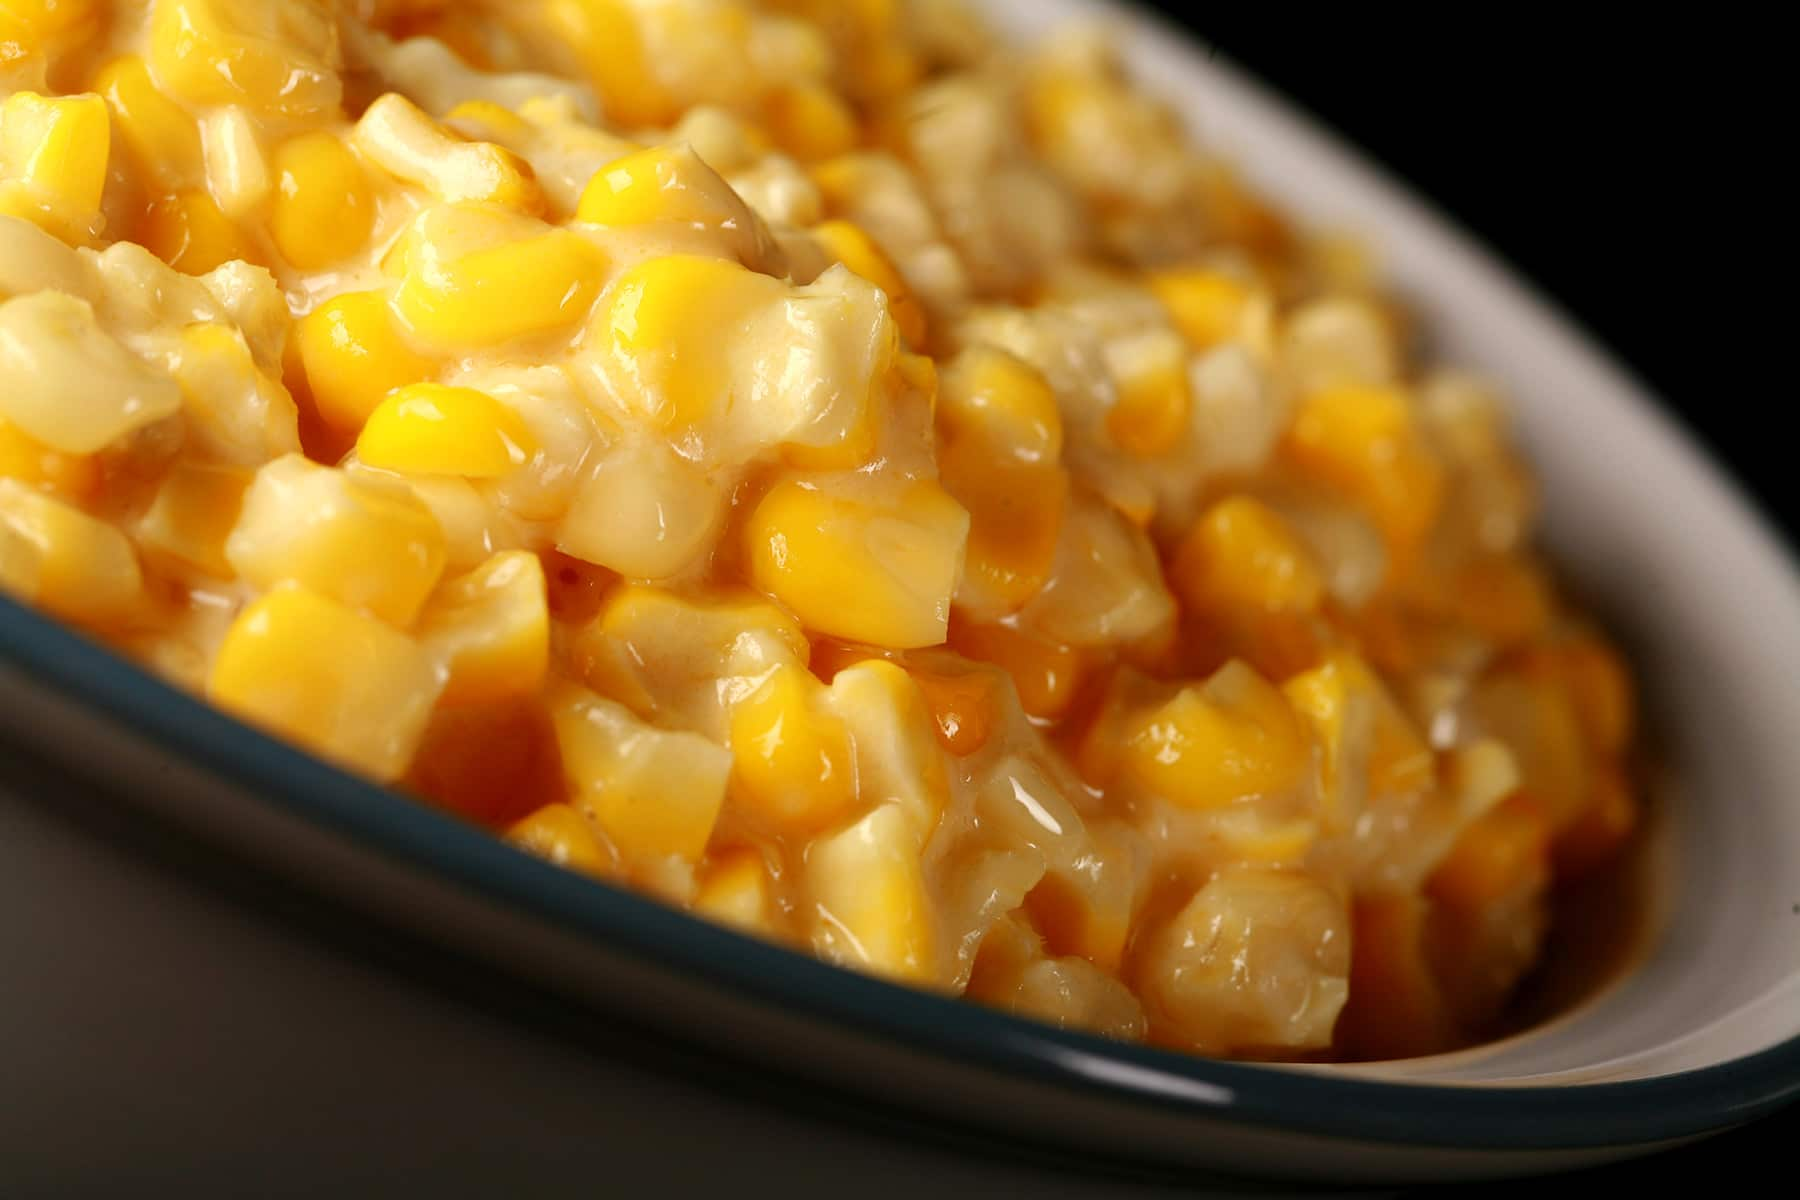 A large white bowl full of homemade creamed corn, against a black background.